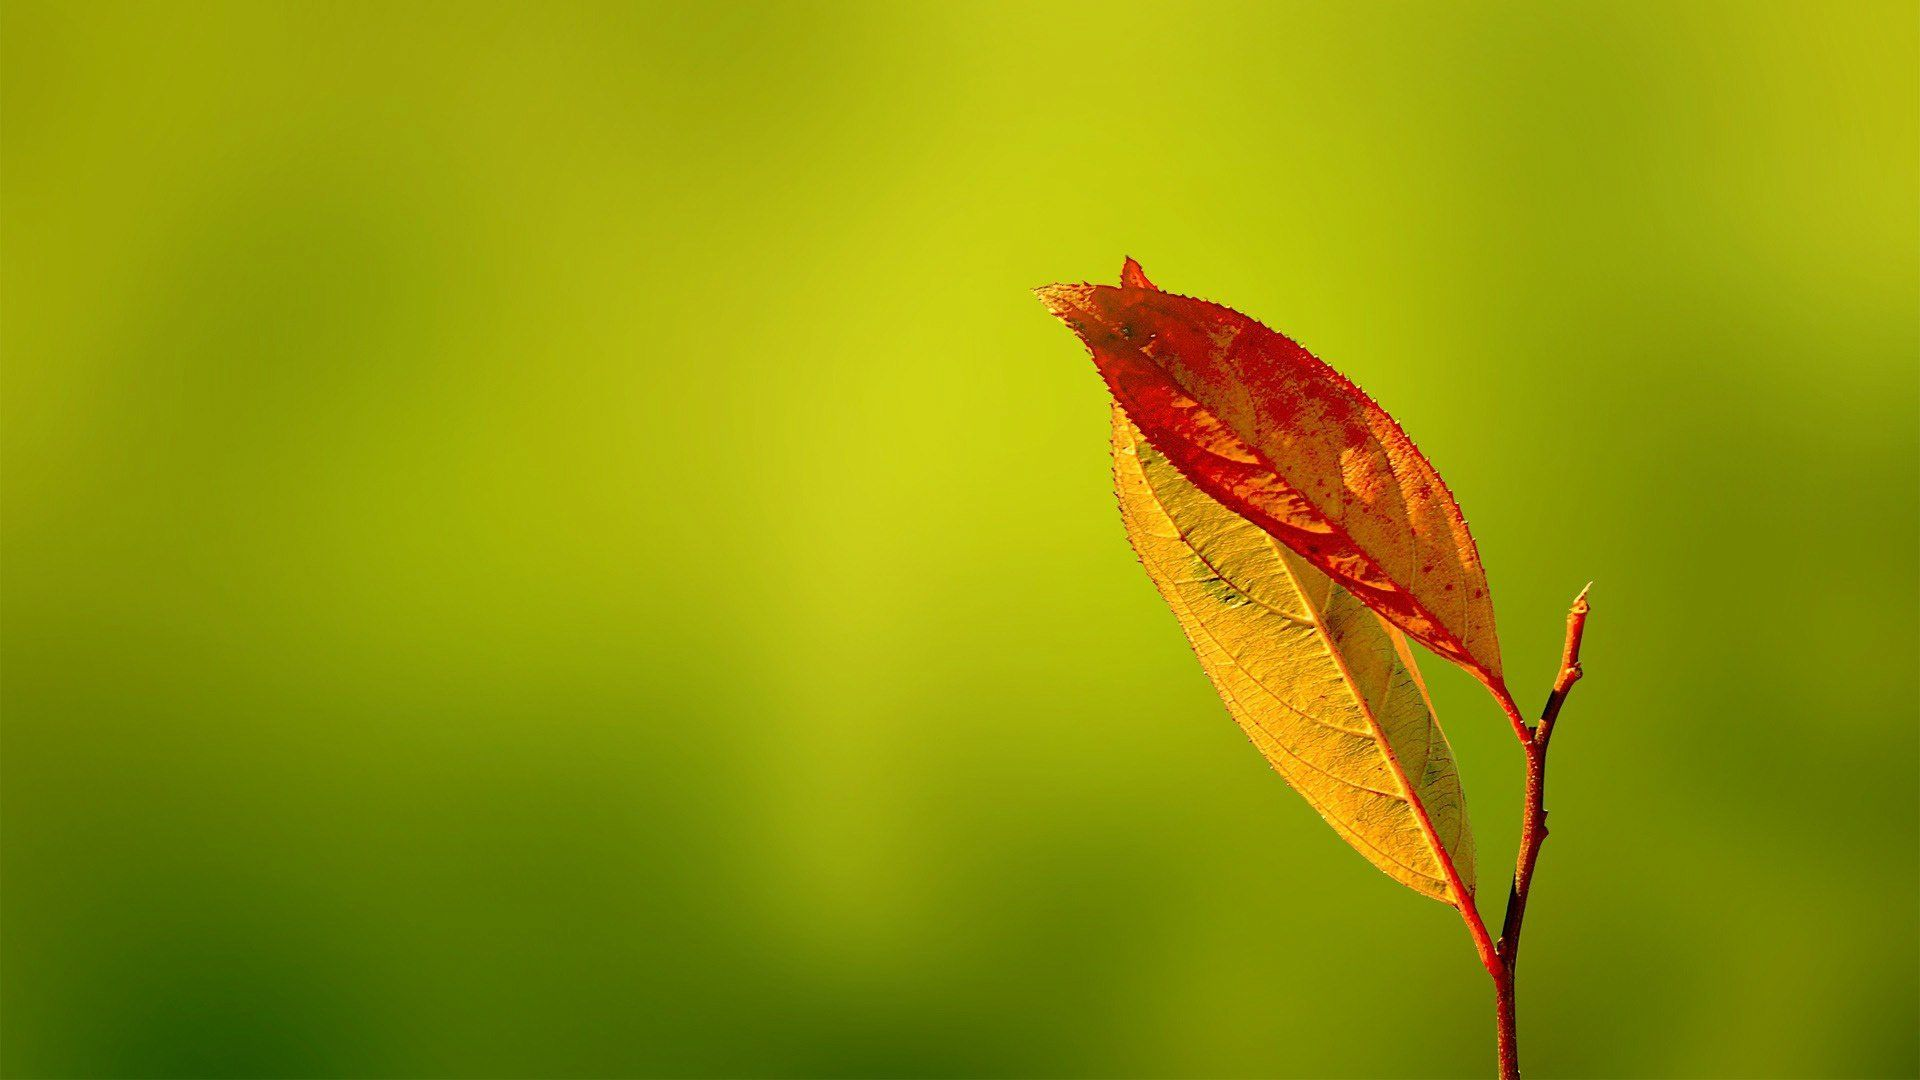 Hd wallpaper wide - Macro Wallpaper Wallpaper Leaves Macro Hd Wallpapers